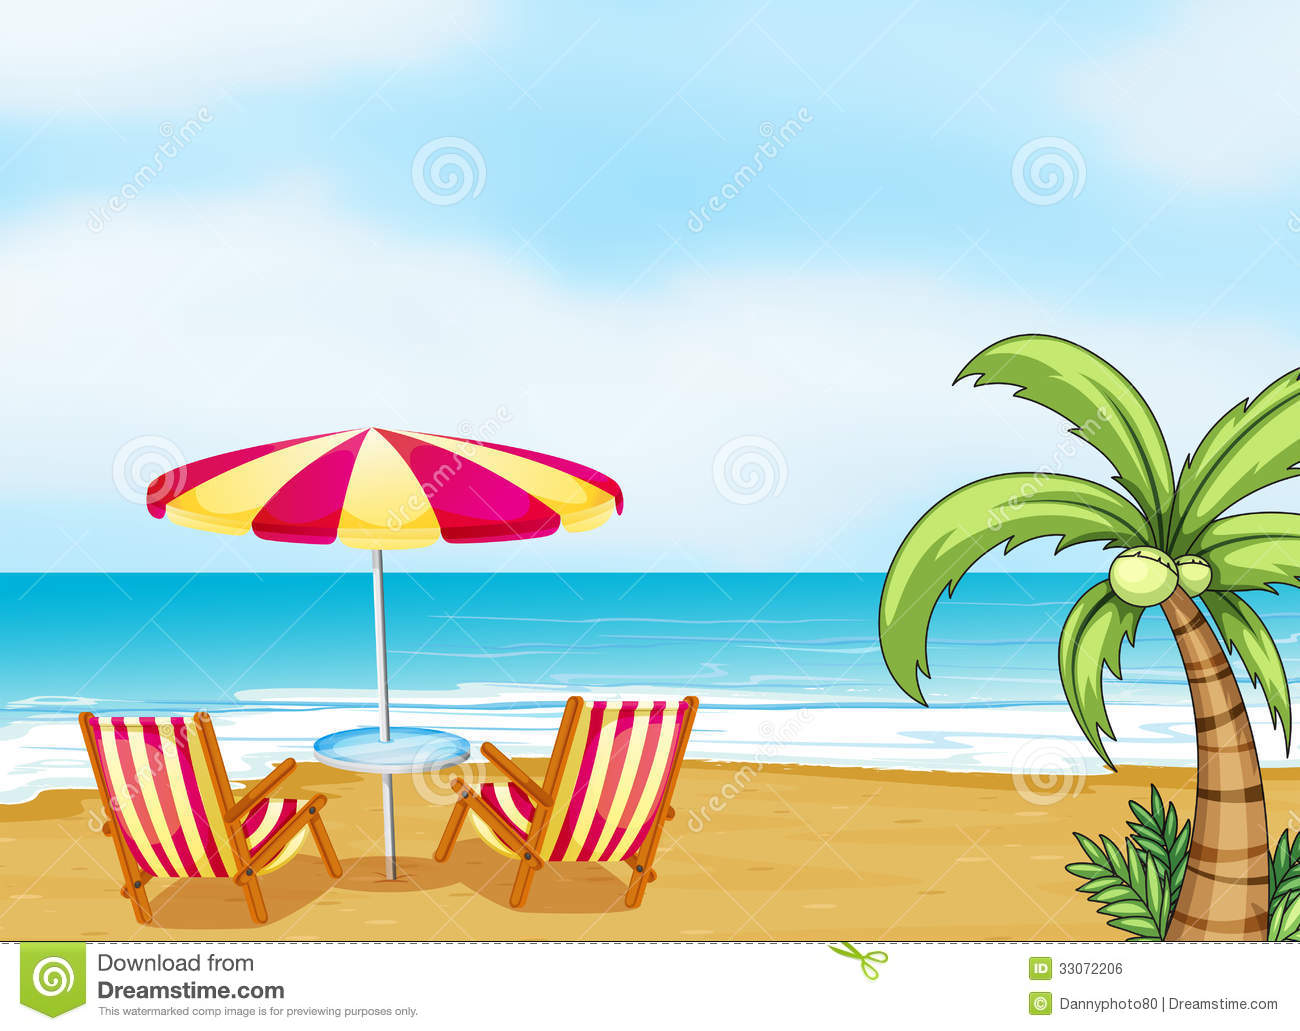 The Beach With An Umbrella And Chairs Royalty Free Stock Image   Image